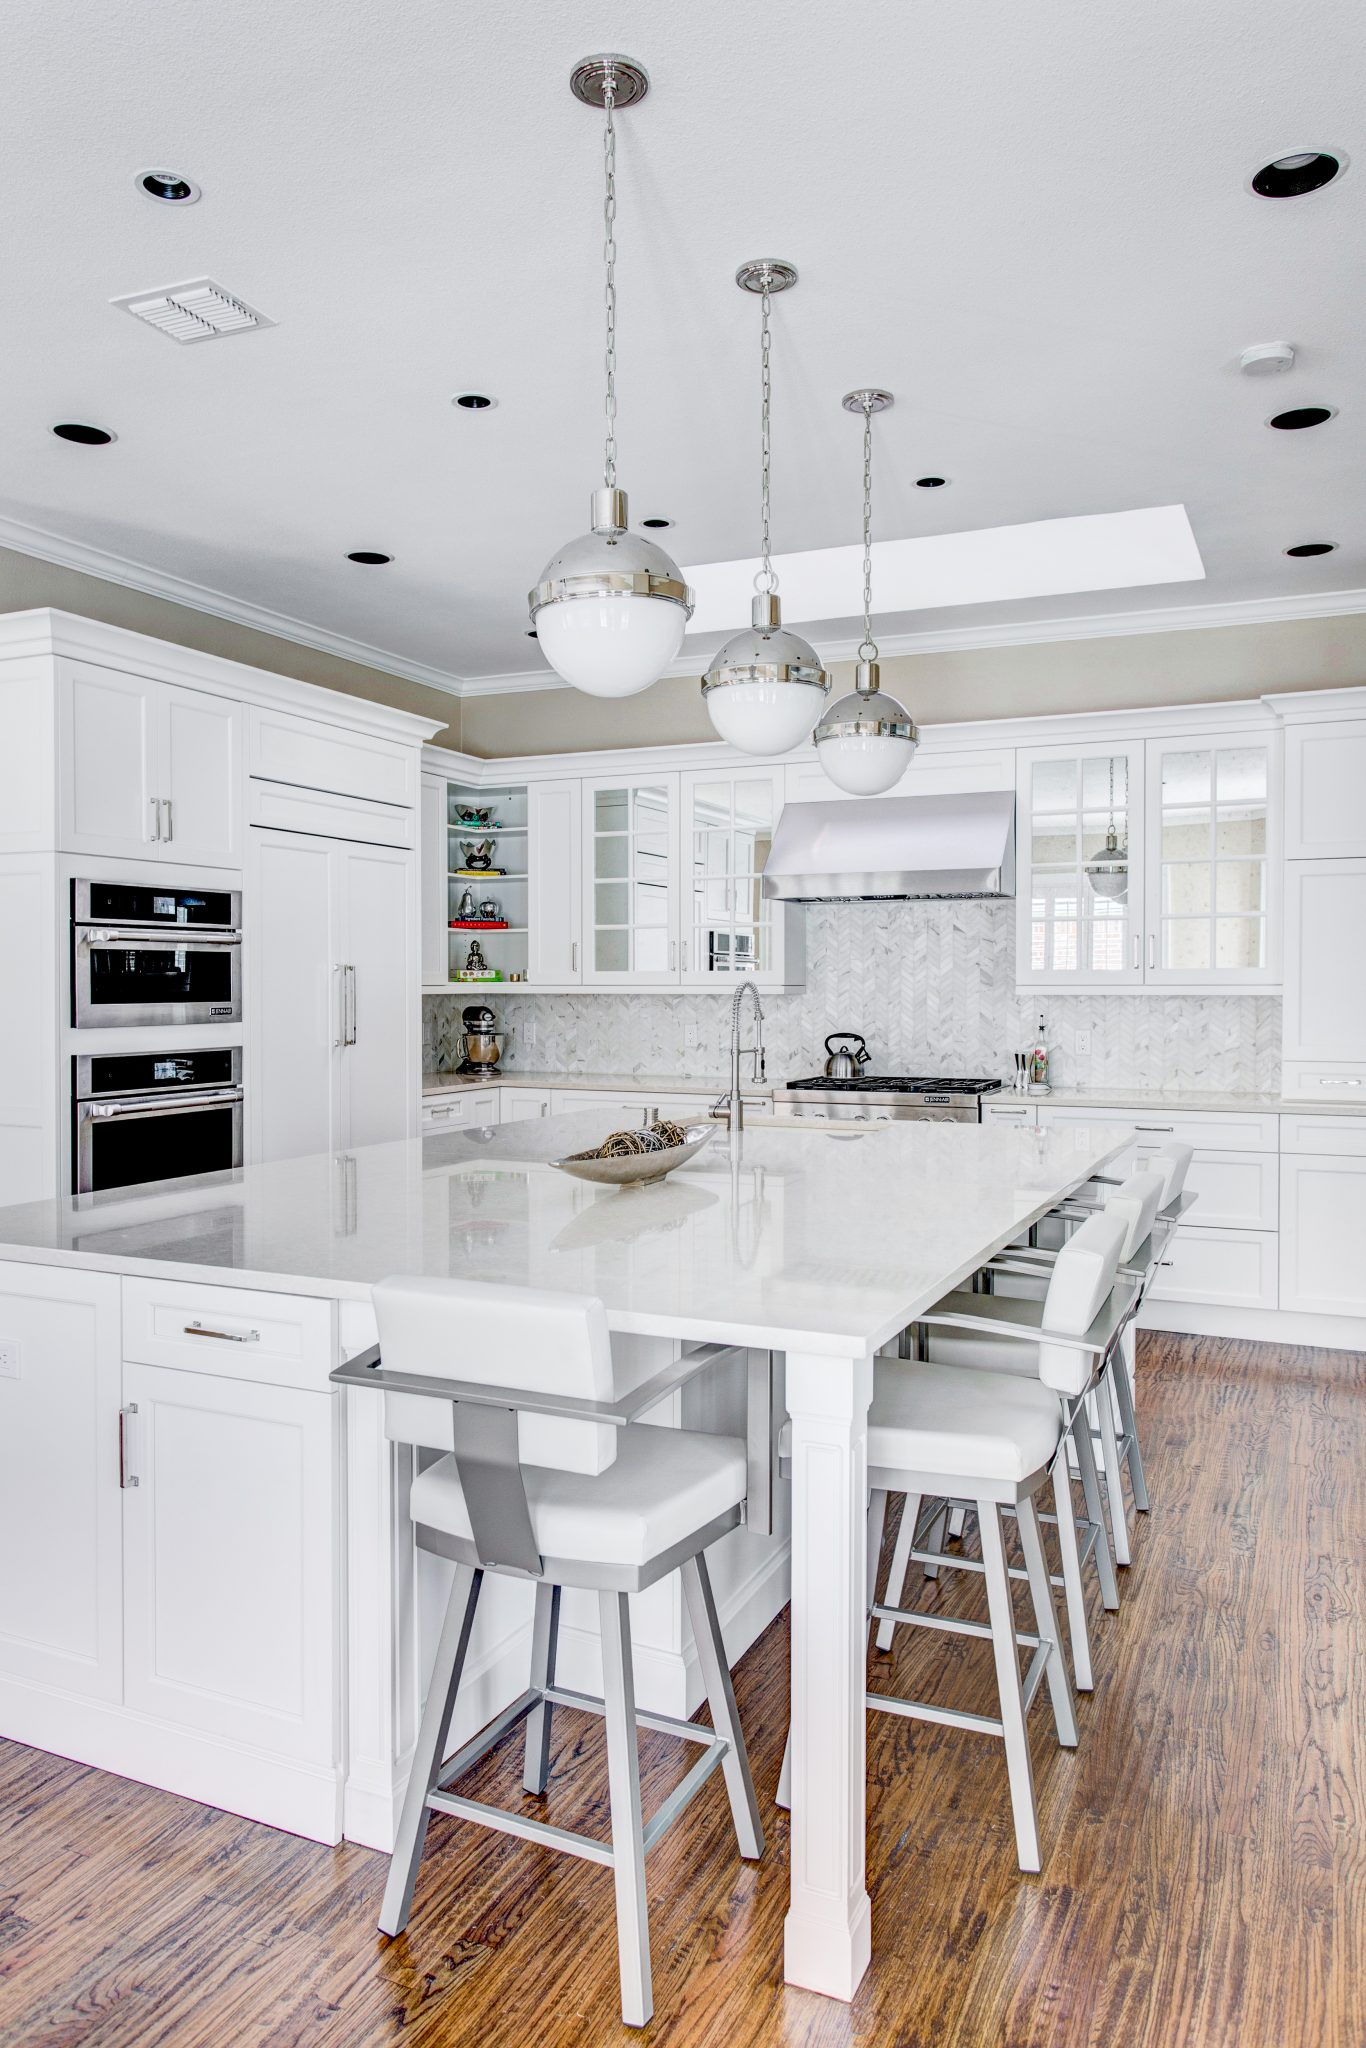 Home Custom Kitchen Designs & Remodels